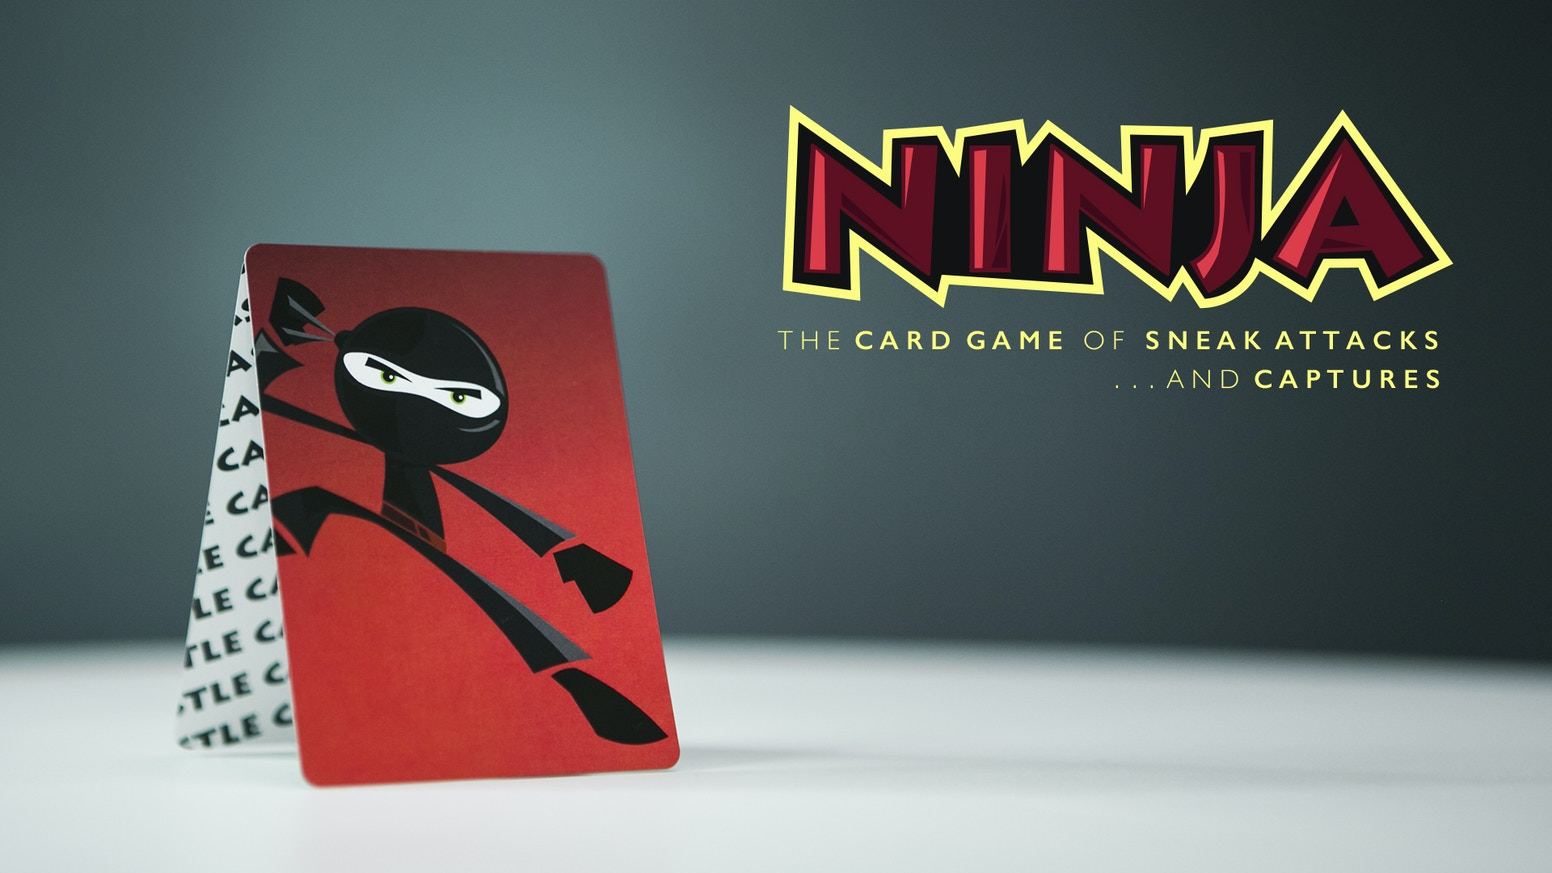 Ninja is fast paced, fun, and engaging.  2-5 players compete simultaneously to be the top ninja.